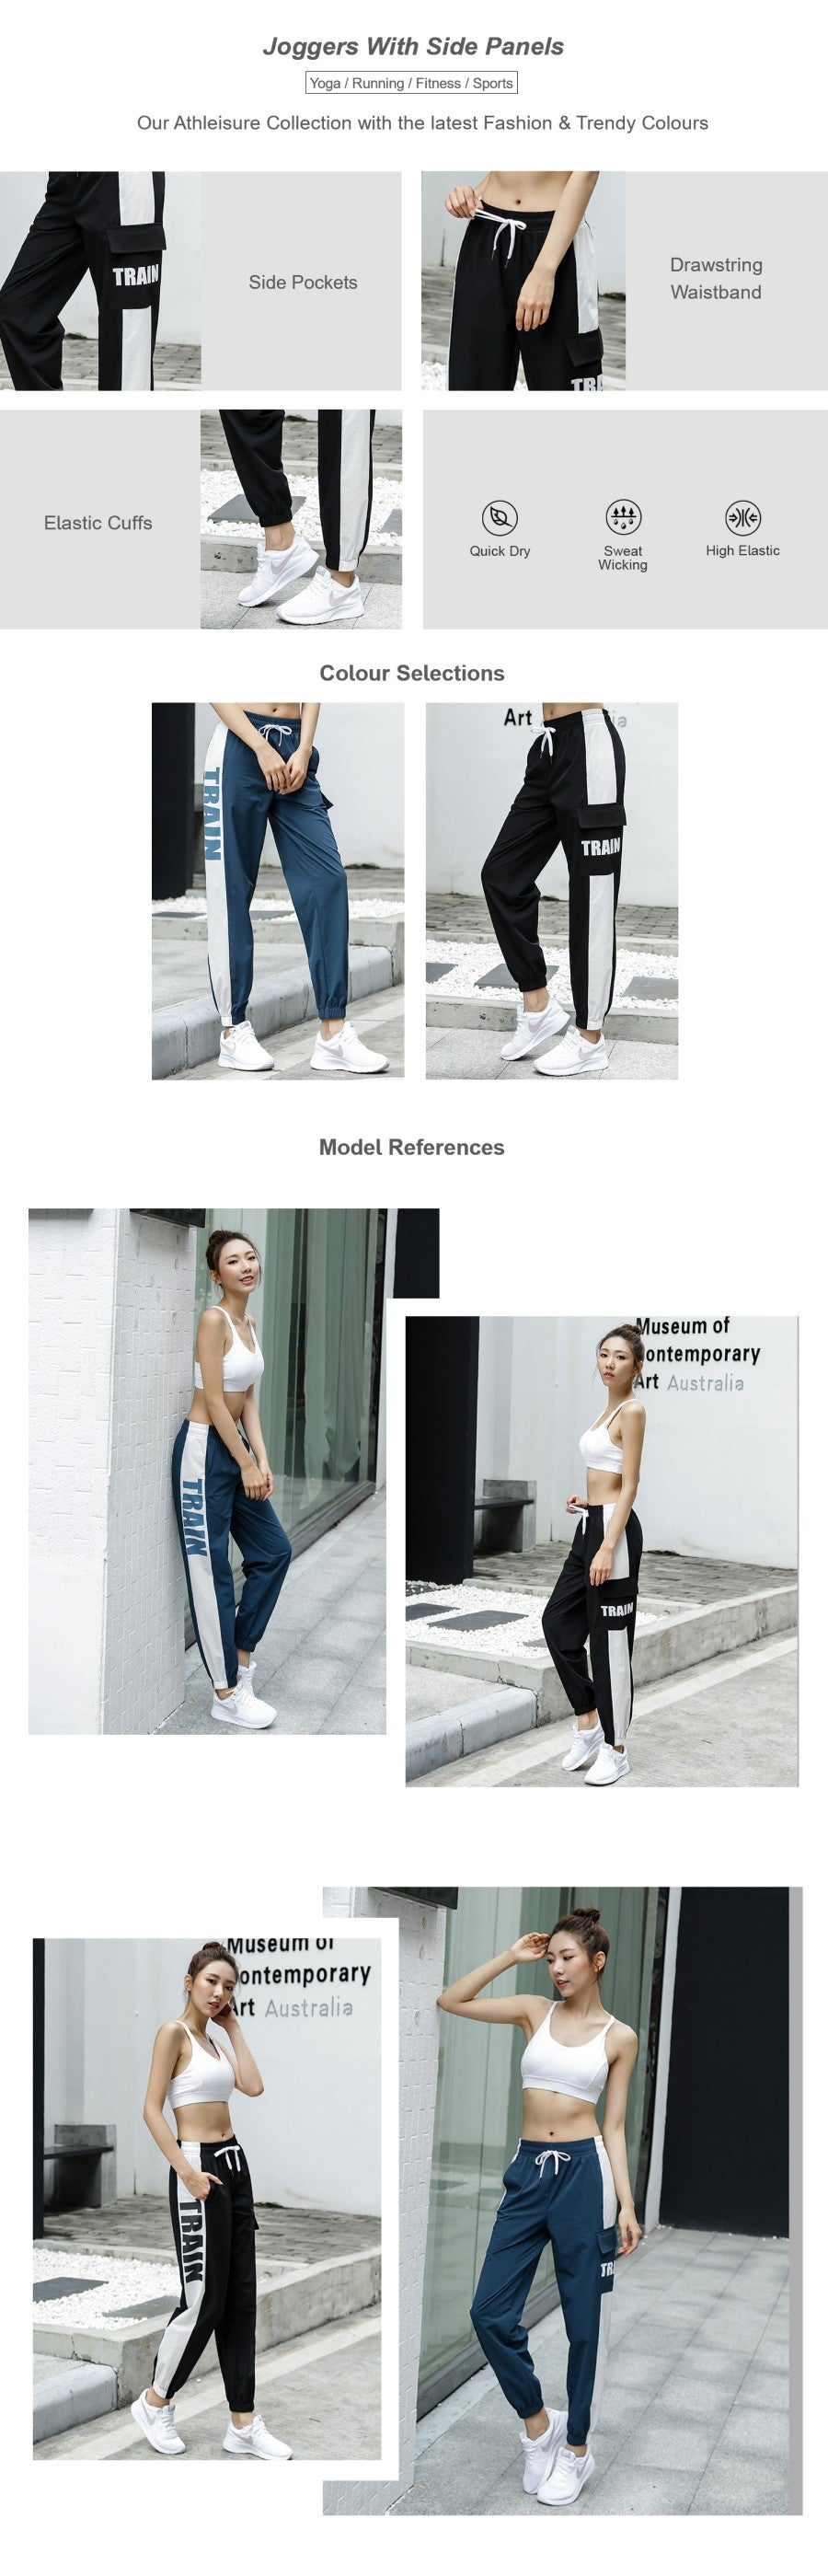 Joggers with Side Pocket